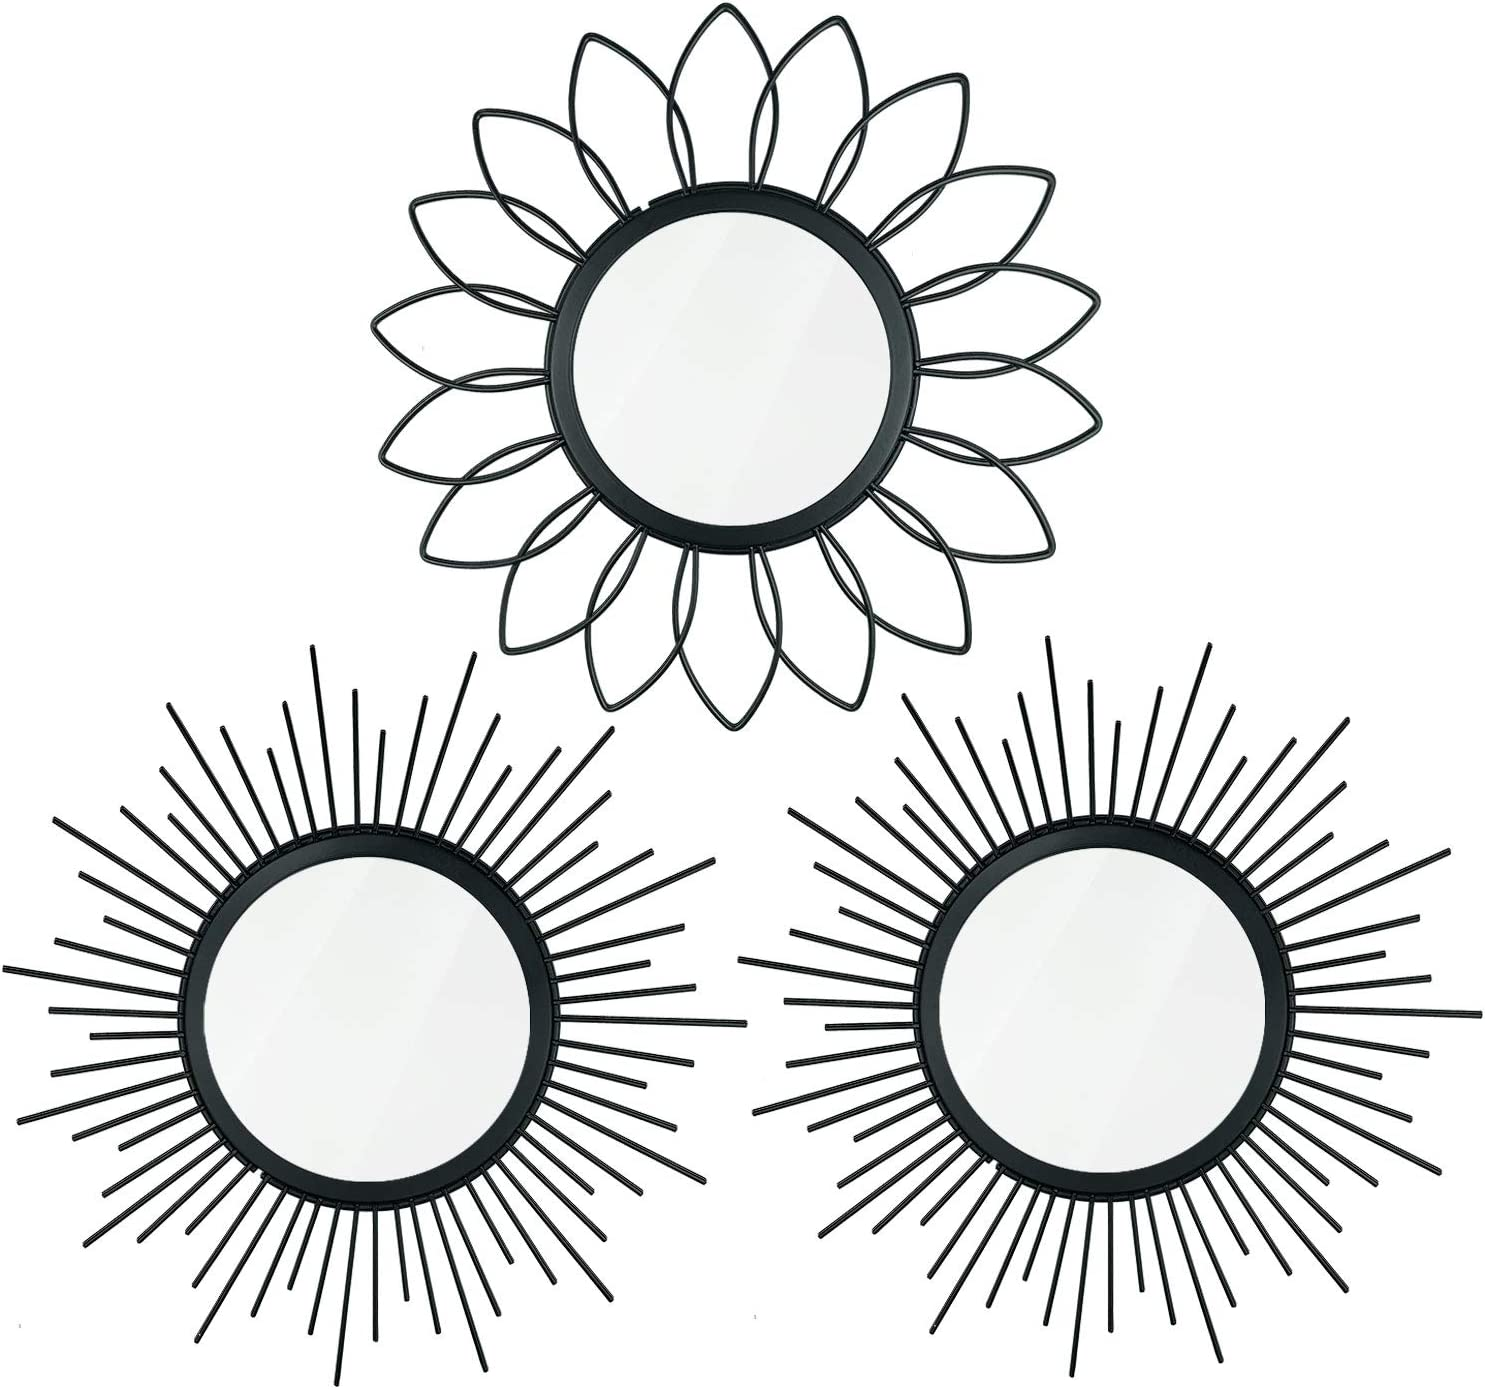 3 Pack Metal Wall Mirrors Black Circle Mirror Classic Decorative Hanging Wall Art Modern for Home Decor Bathroom Bedroom Living Room